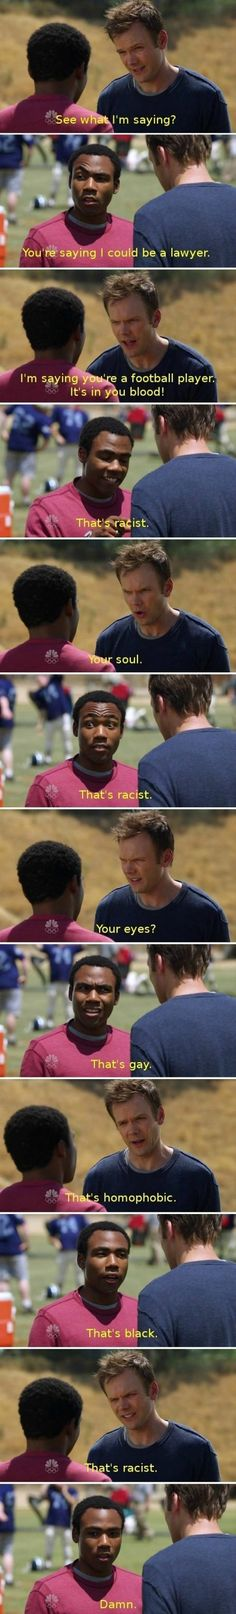 Ahhh Community. Come back to me!